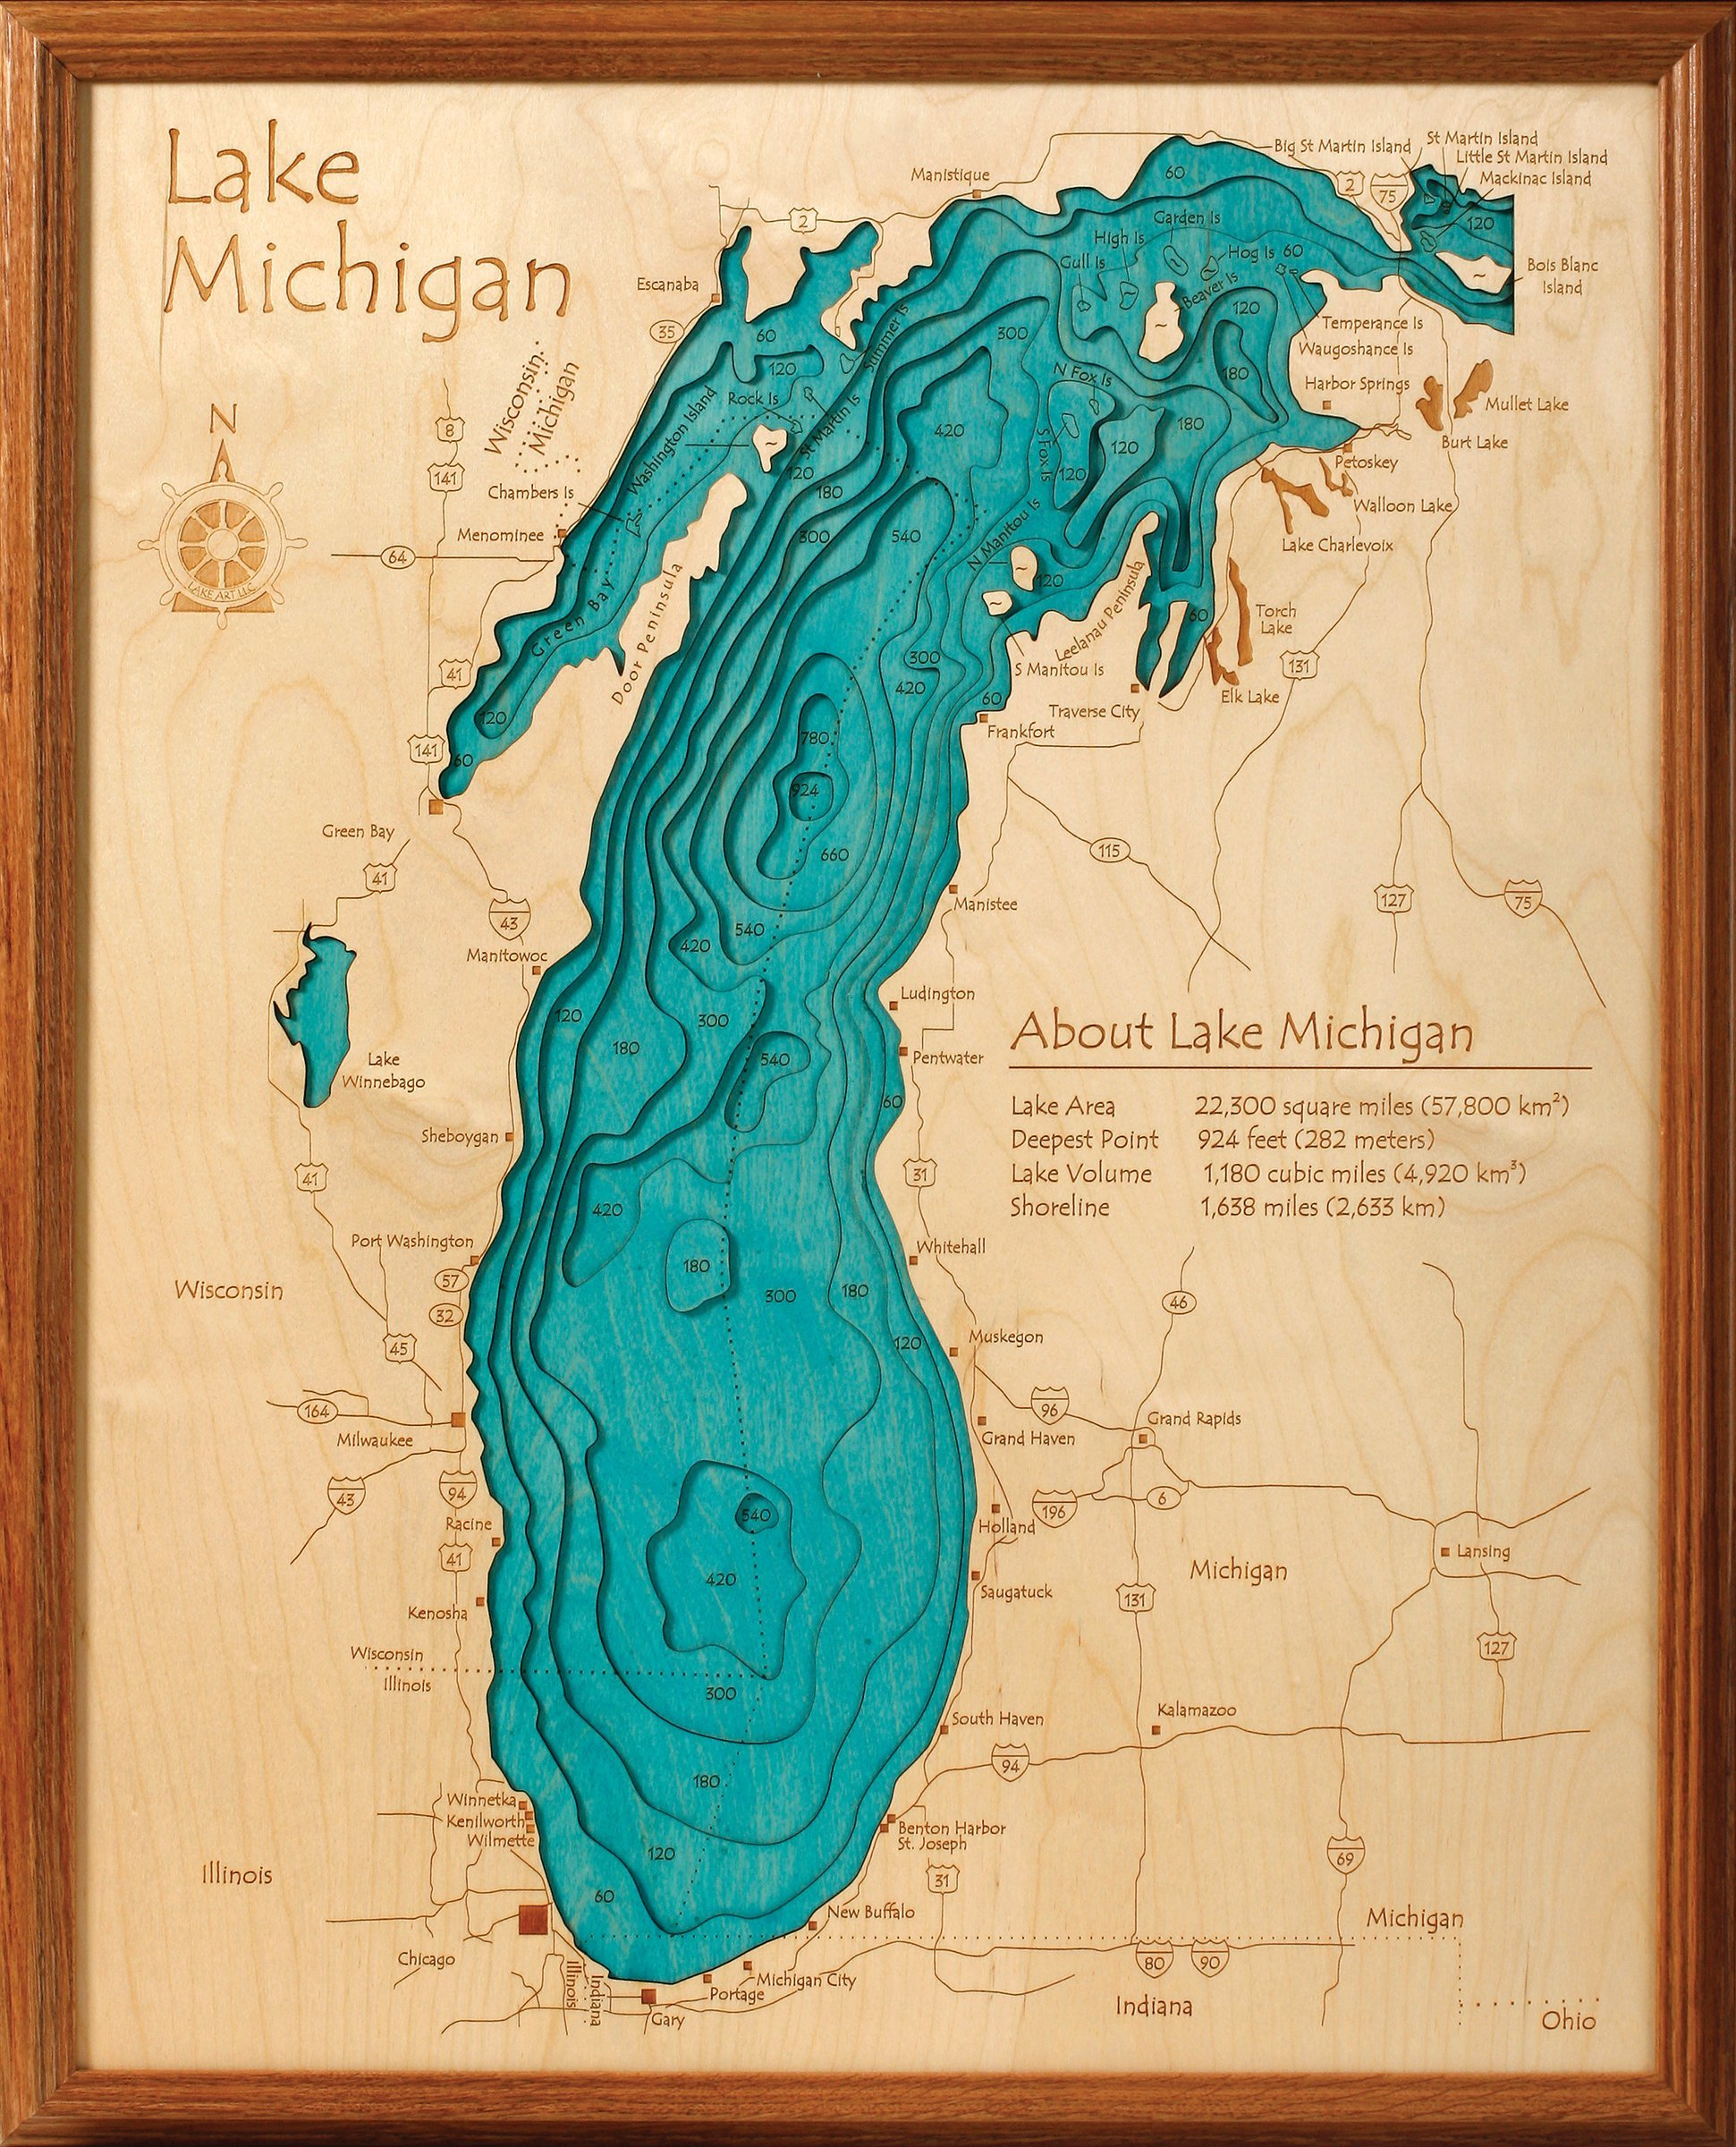 Boy Lake (Little) in Cass, MN - 3D Map 16 x 20 IN - Laser carved wood nautical chart and topographic depth map.